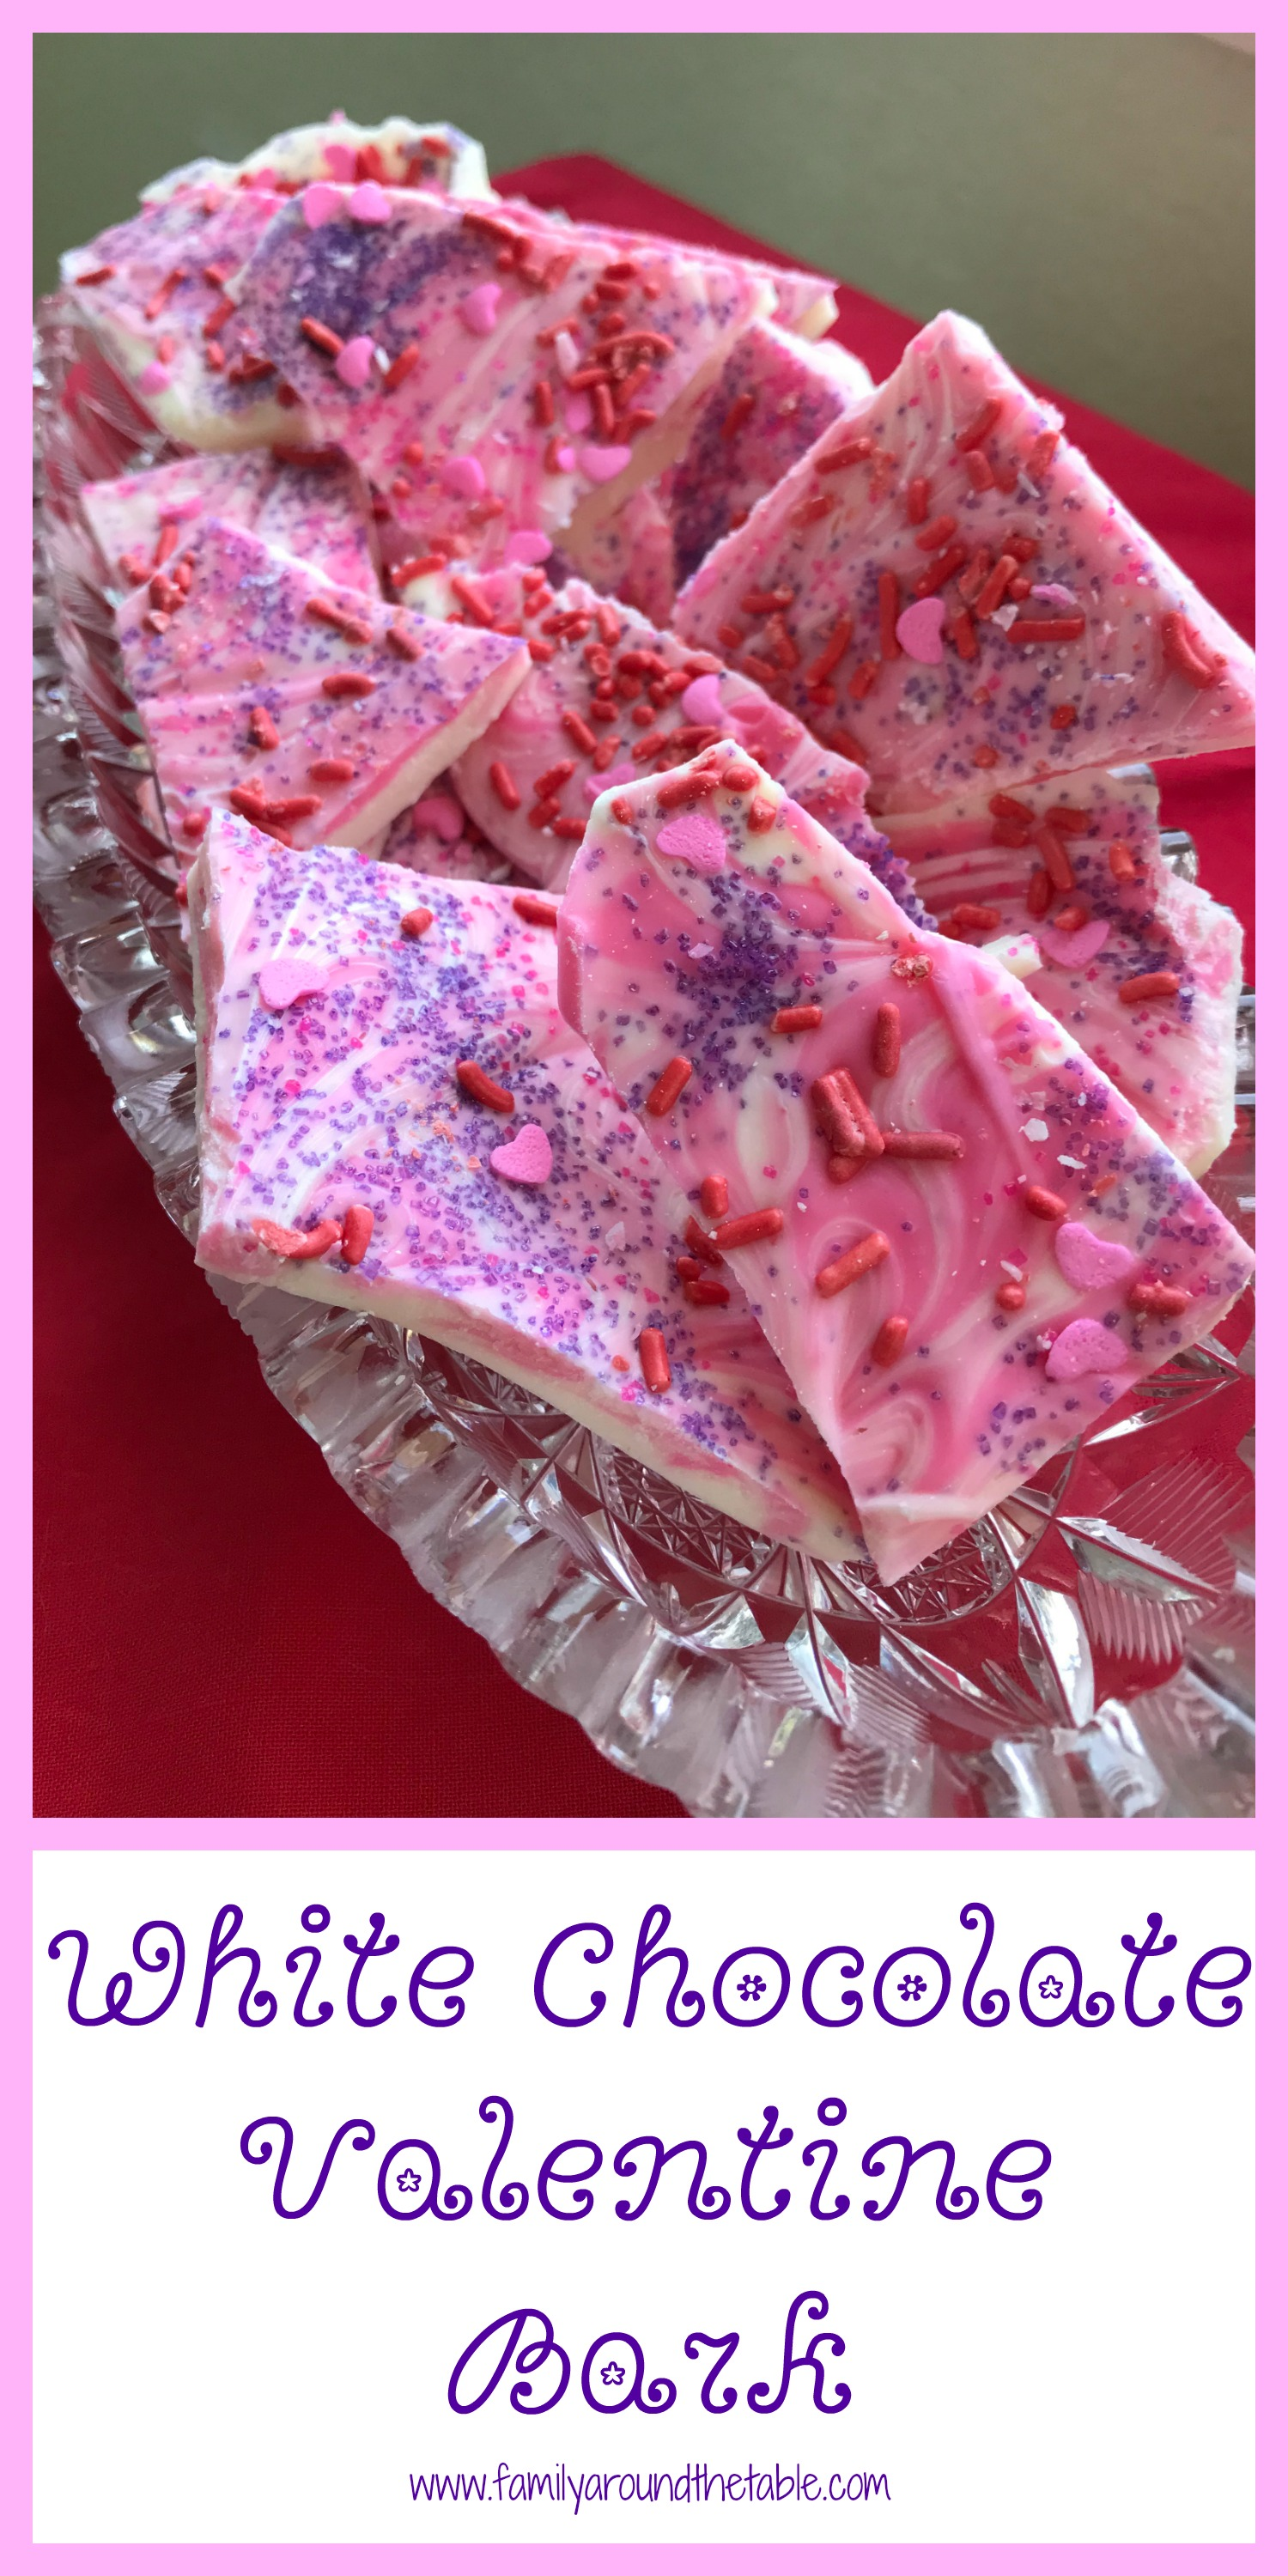 White chocolate valentine bark is a festive treat.